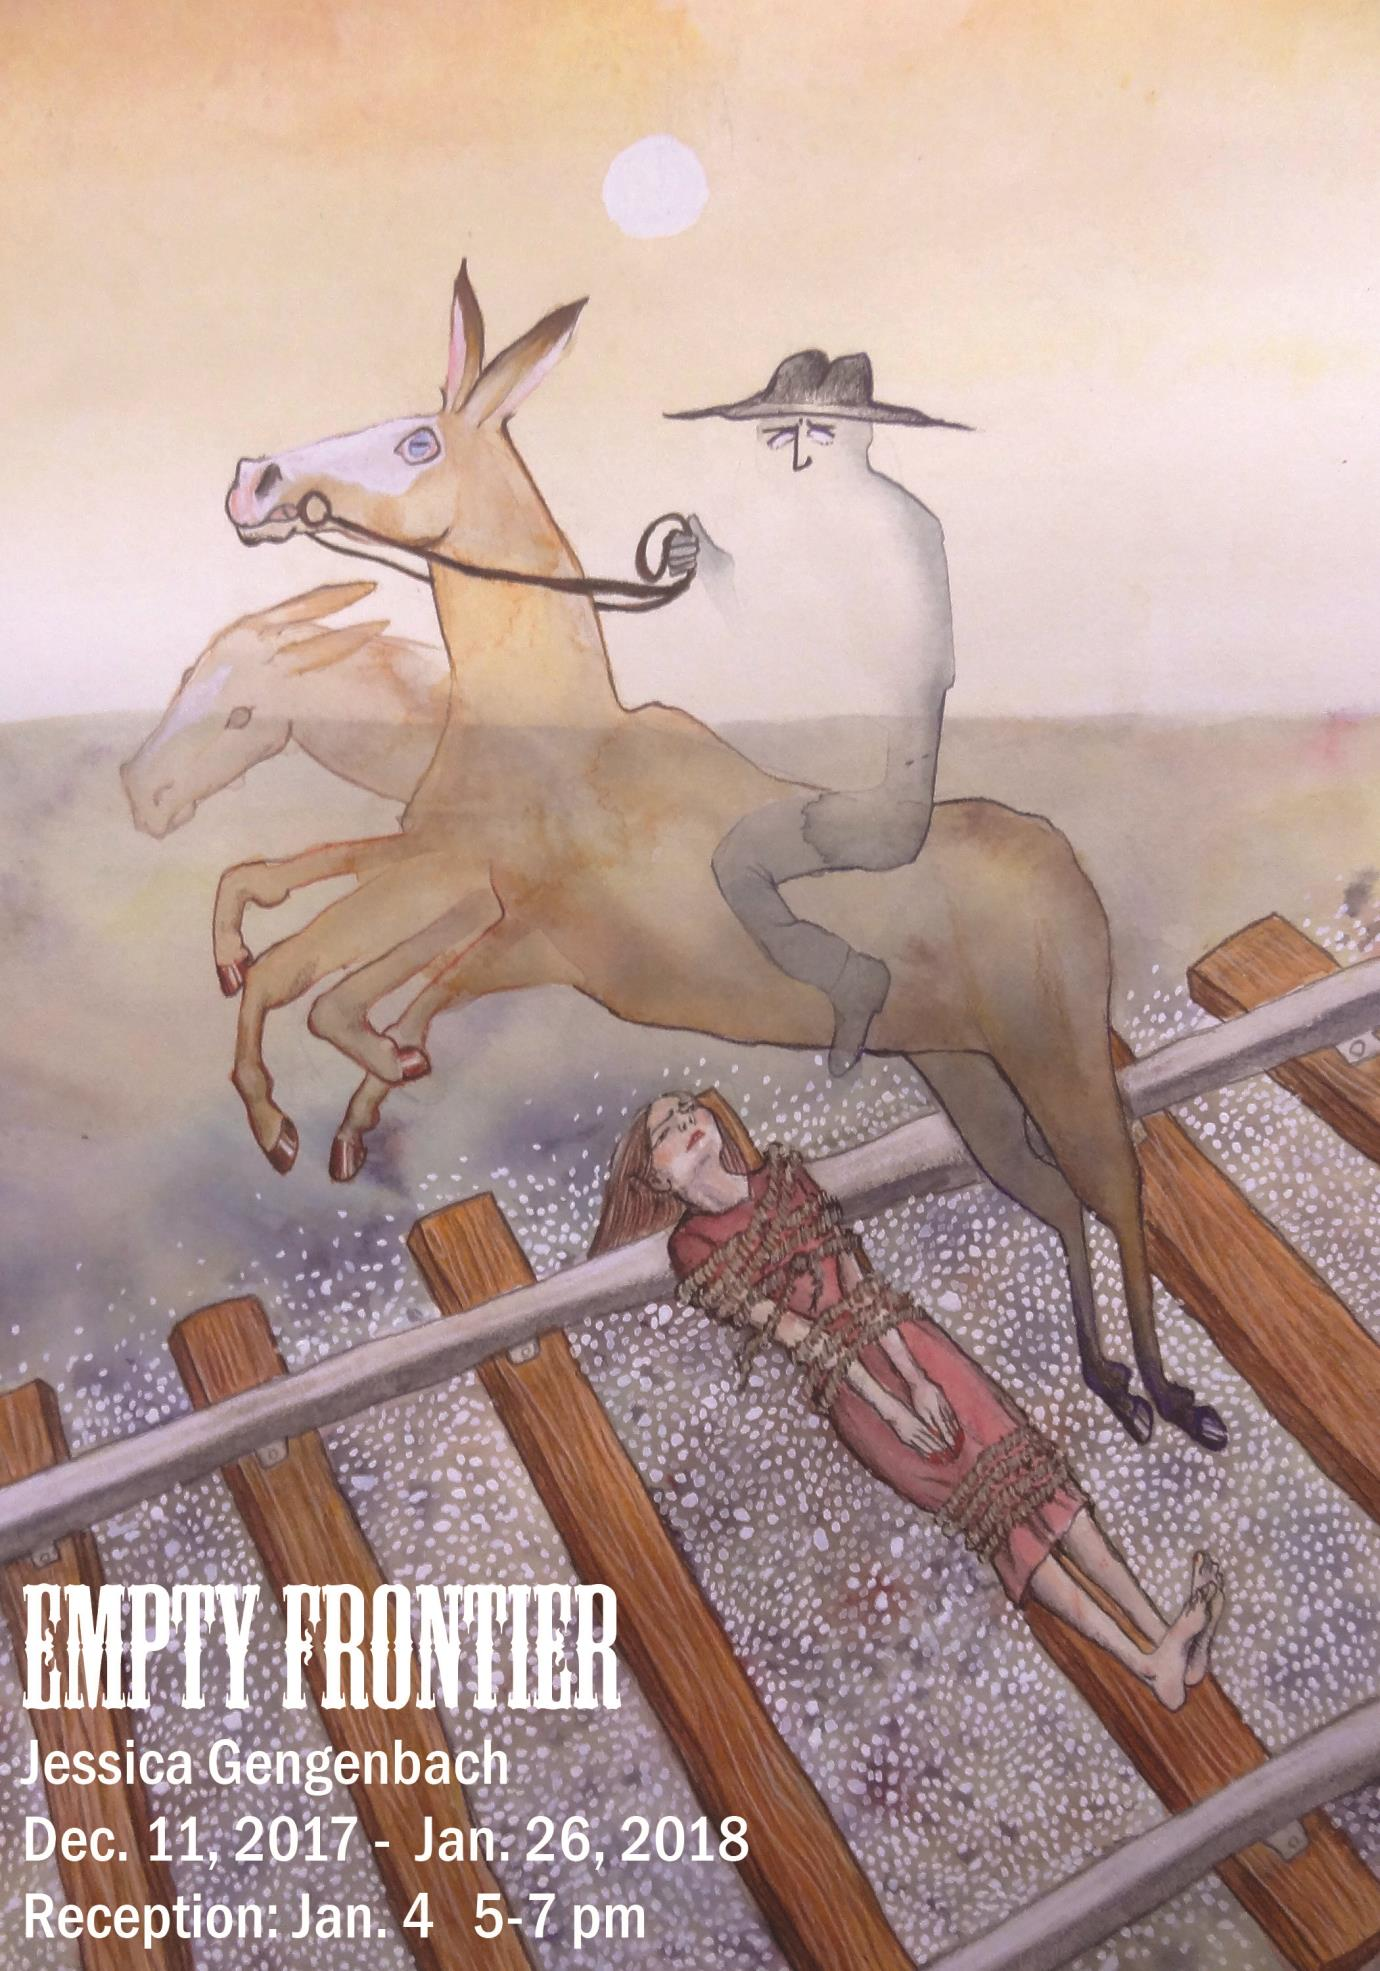 Drawing of a cat with a hat riding a horse across train tracks with a girl tied to them in muted colors, Empty Frontier Jessica Gengenbach, Dec. 11 - Jan. 26, 2018, Artist Reception Jan. 4, 5-7 pm